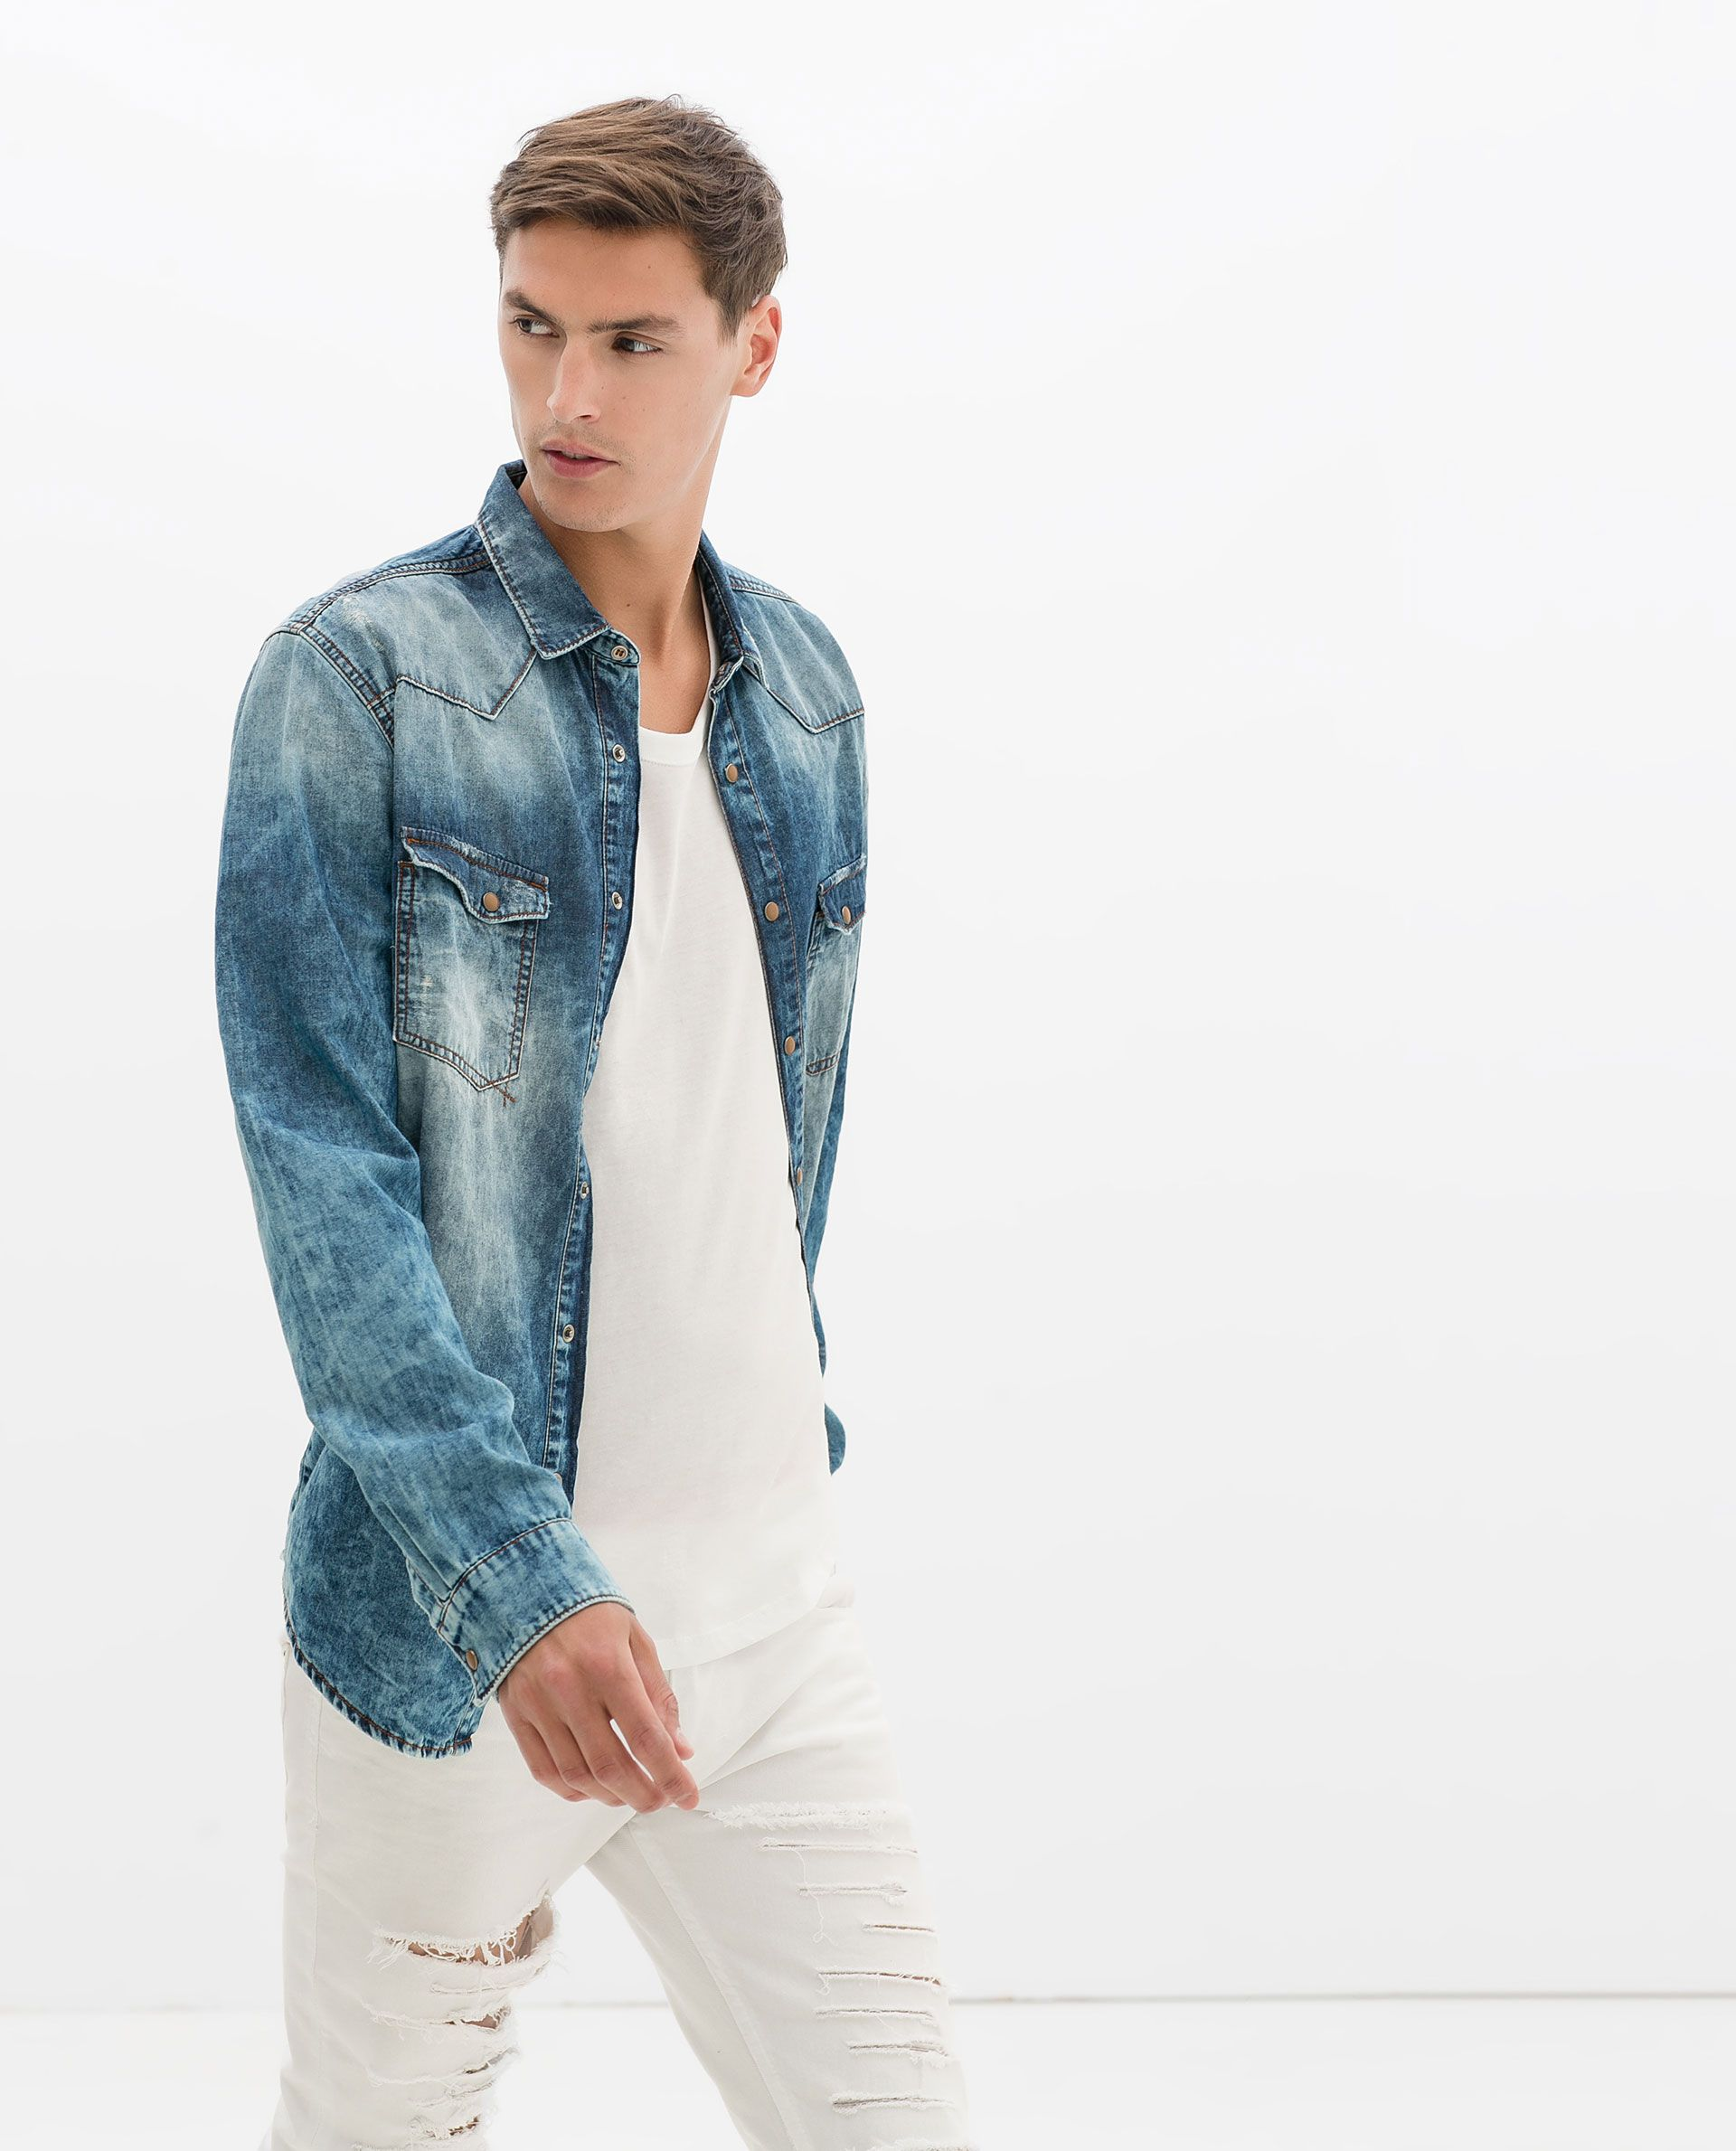 cb4b7705 Zara MAN. - Washed Denim Shirt Paired w/ white ripped skinny jeans & a